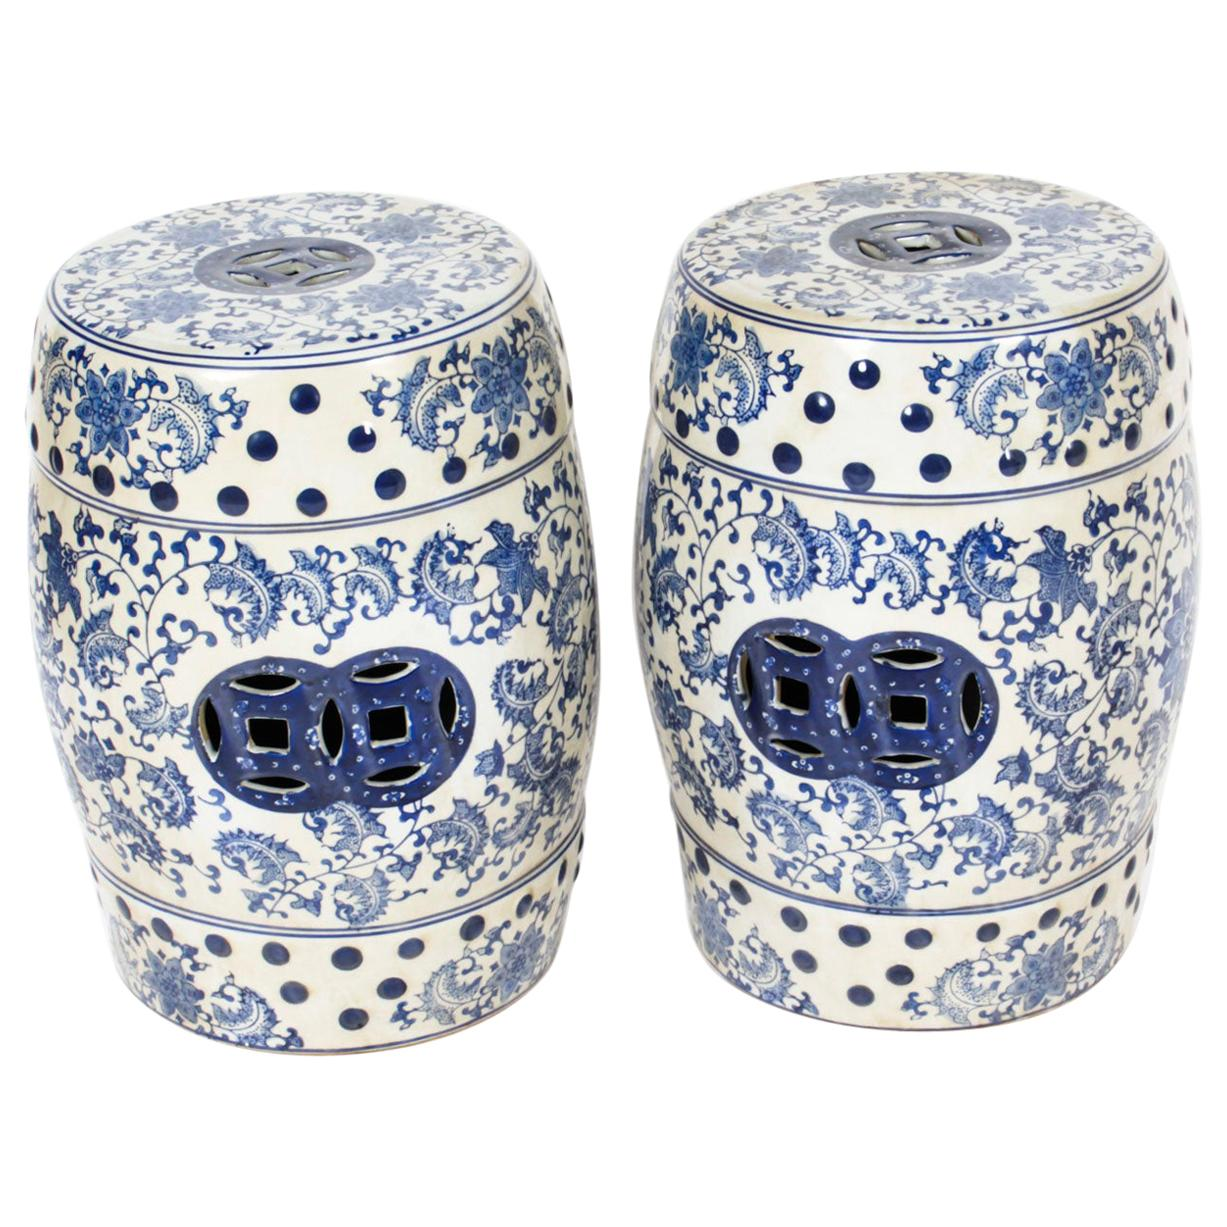 Vintage Pair of Japanese Blue and White Ceramic Garden Seats, 20th Century